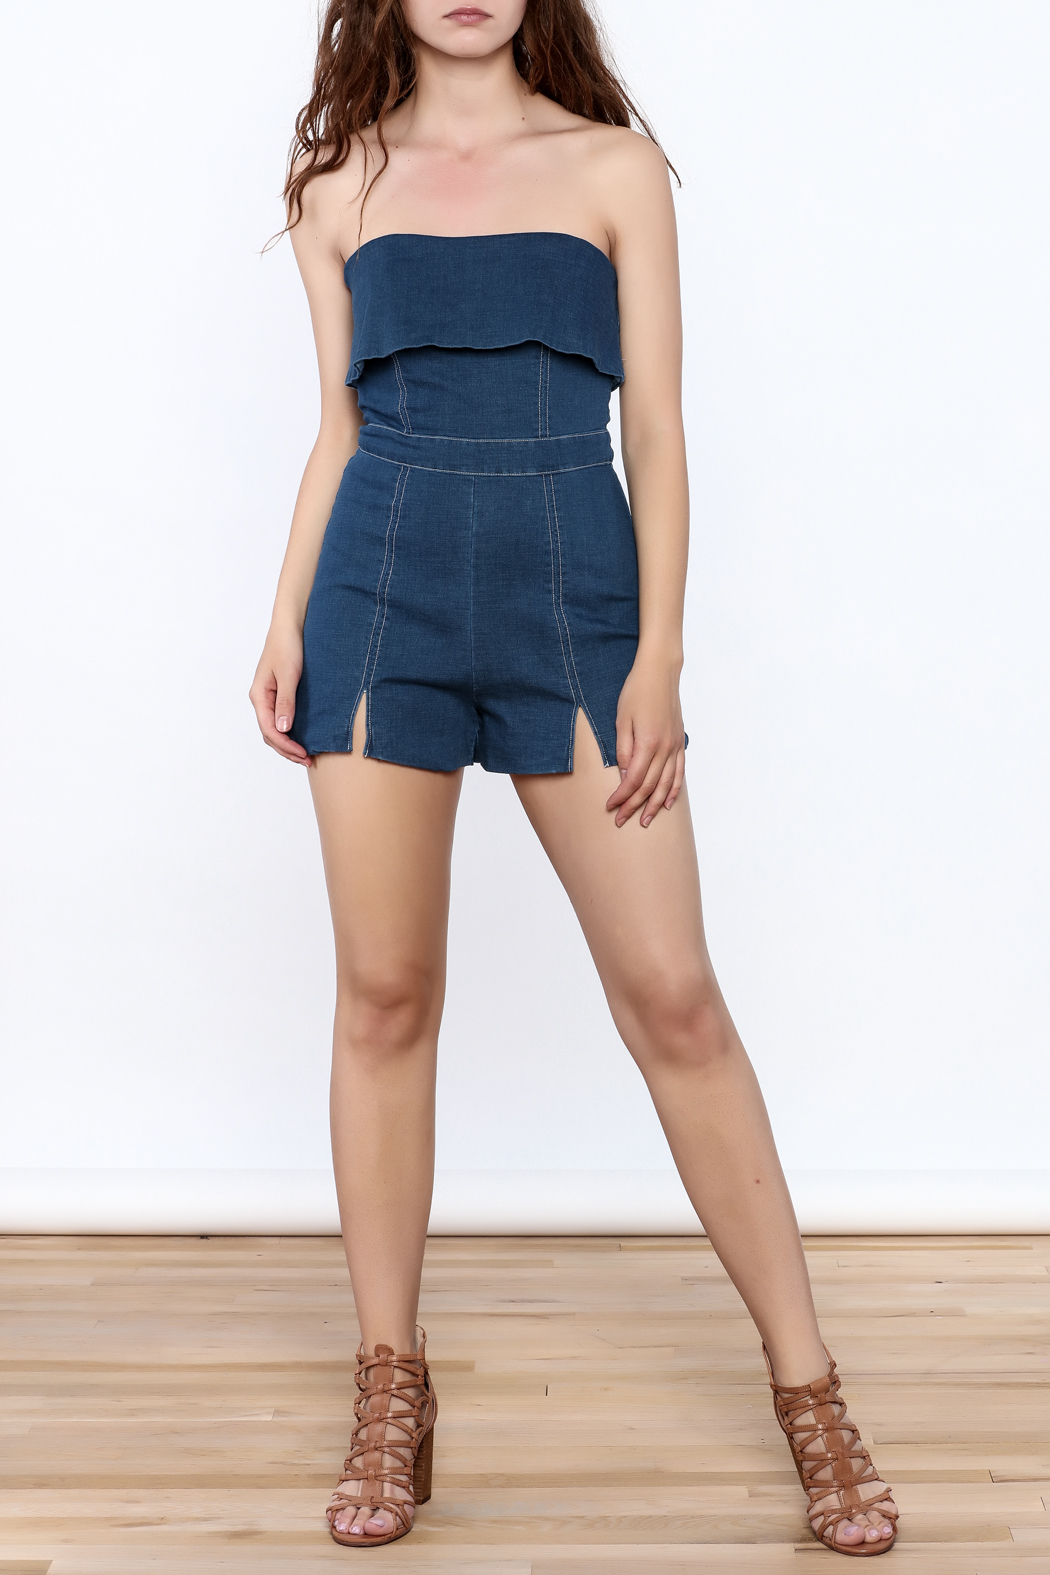 Do & Be Denim Strapless Romper - Front Full Image